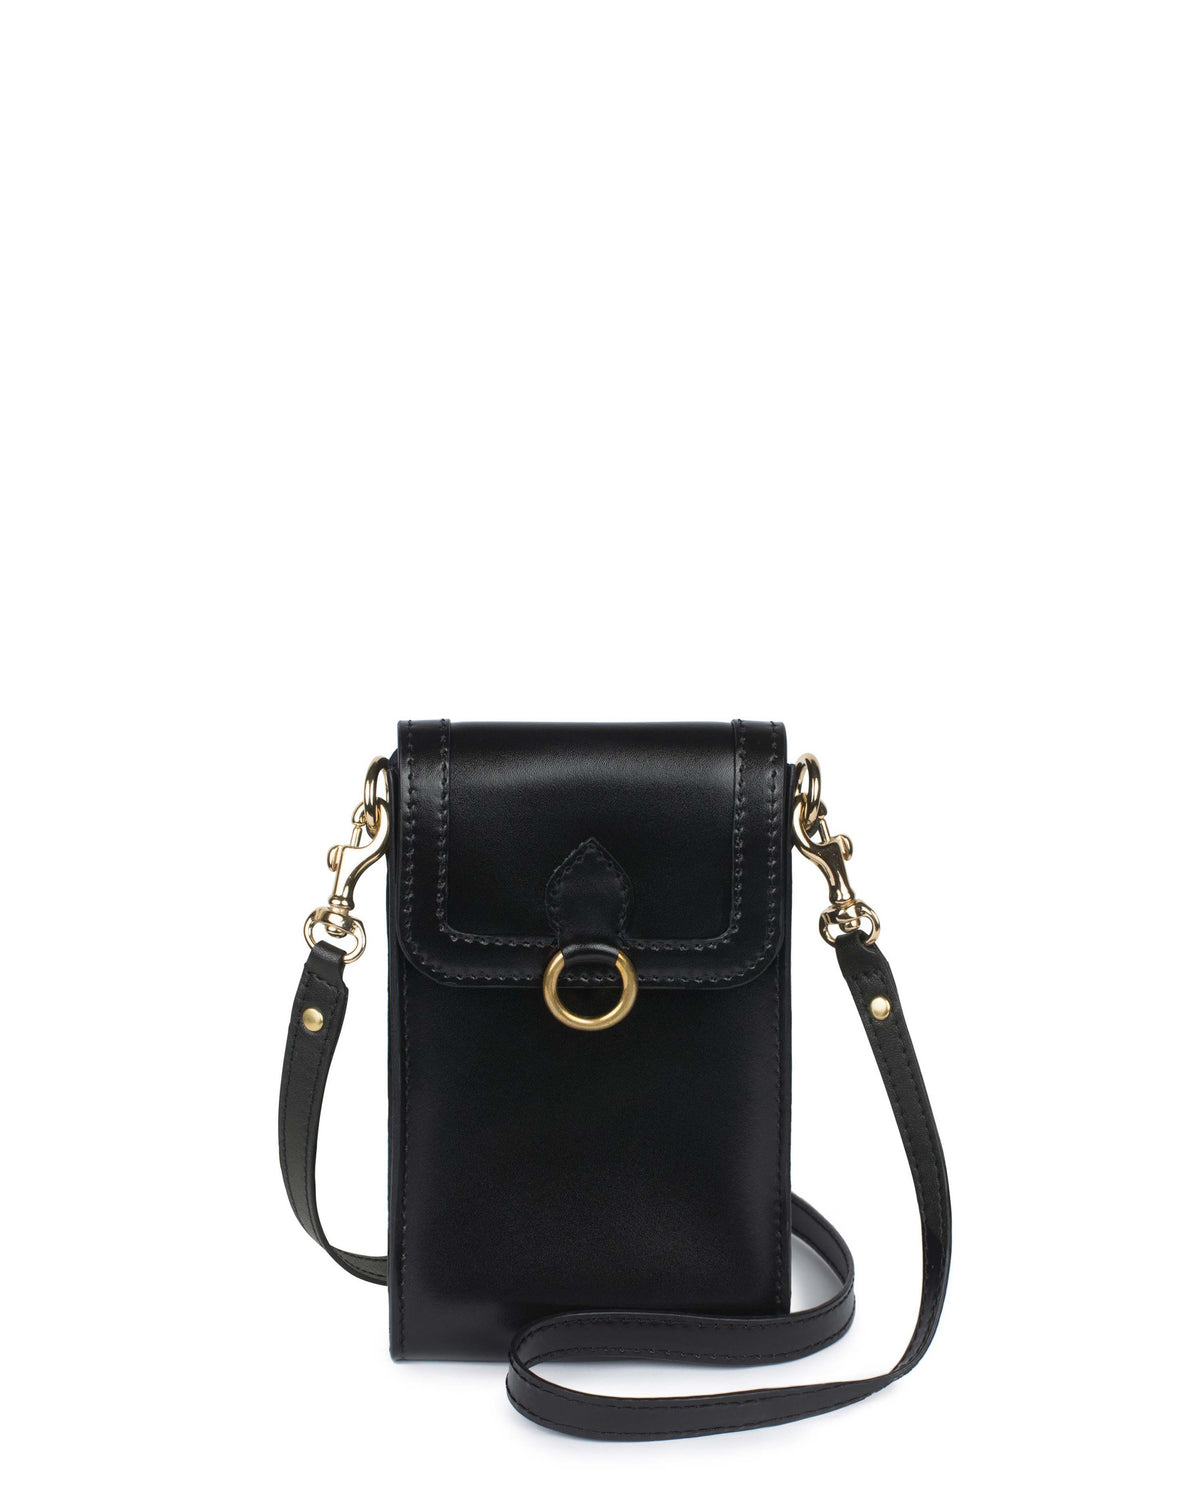 GITANA MINI in Black Napa